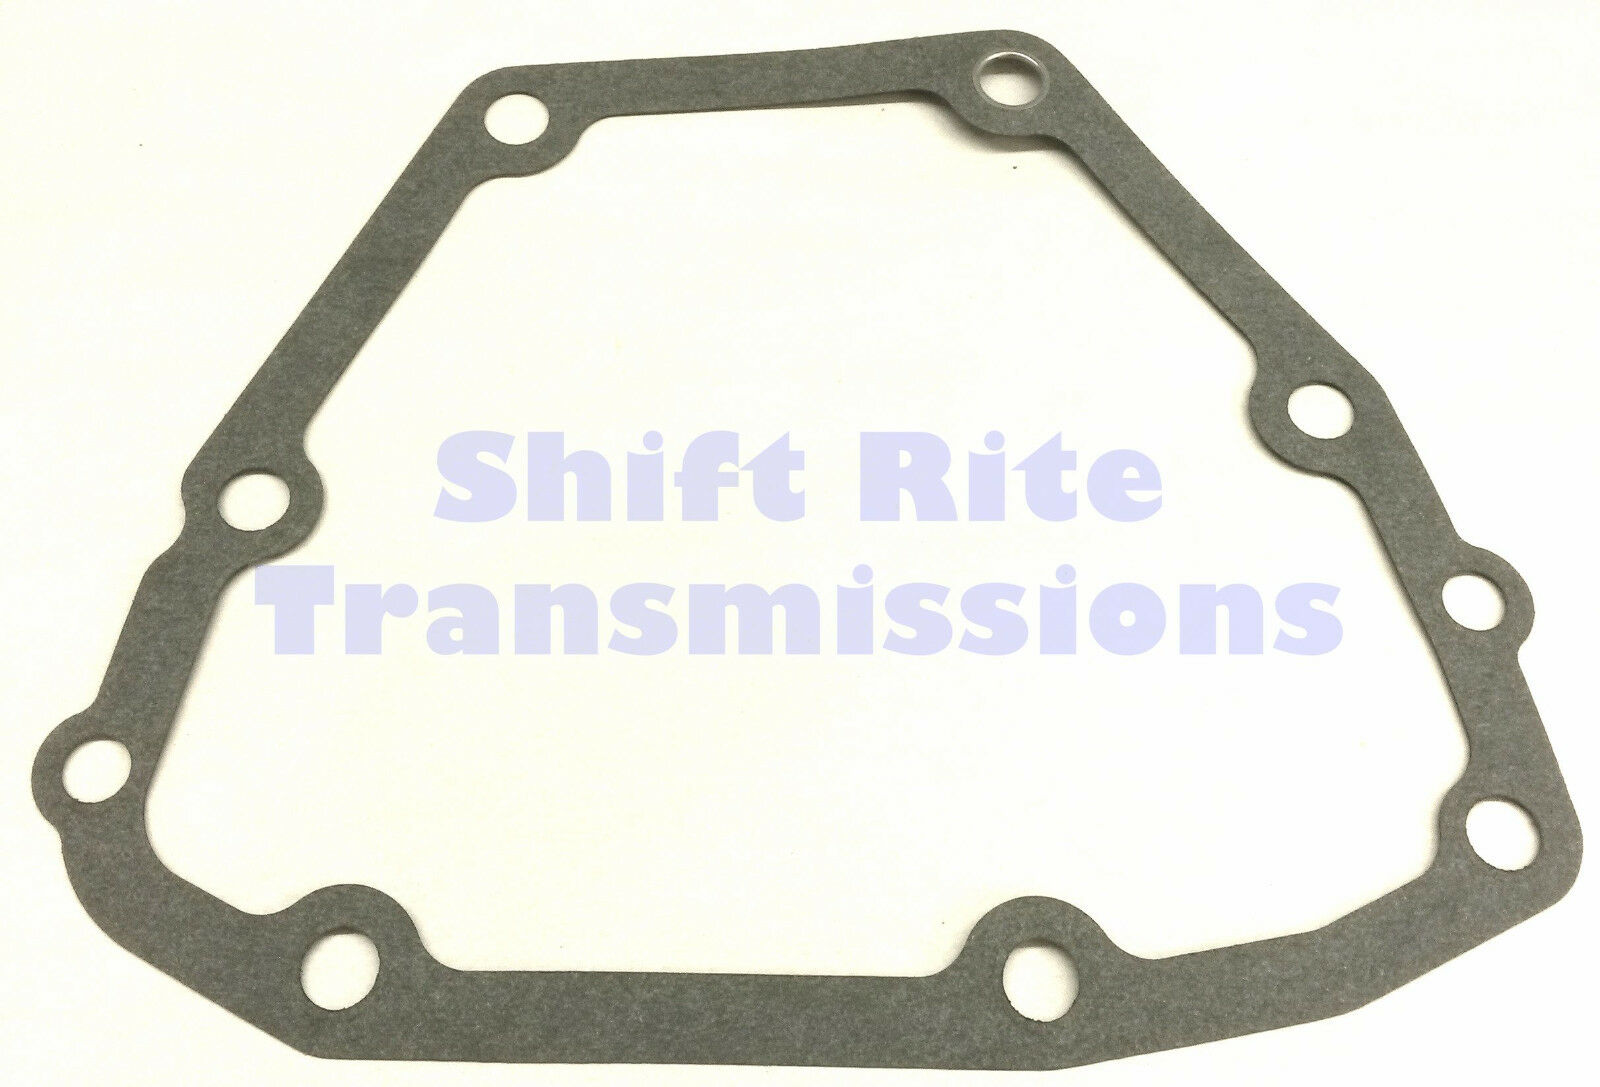 hight resolution of ford explorer 5r55w 5r55s transfer case gasket